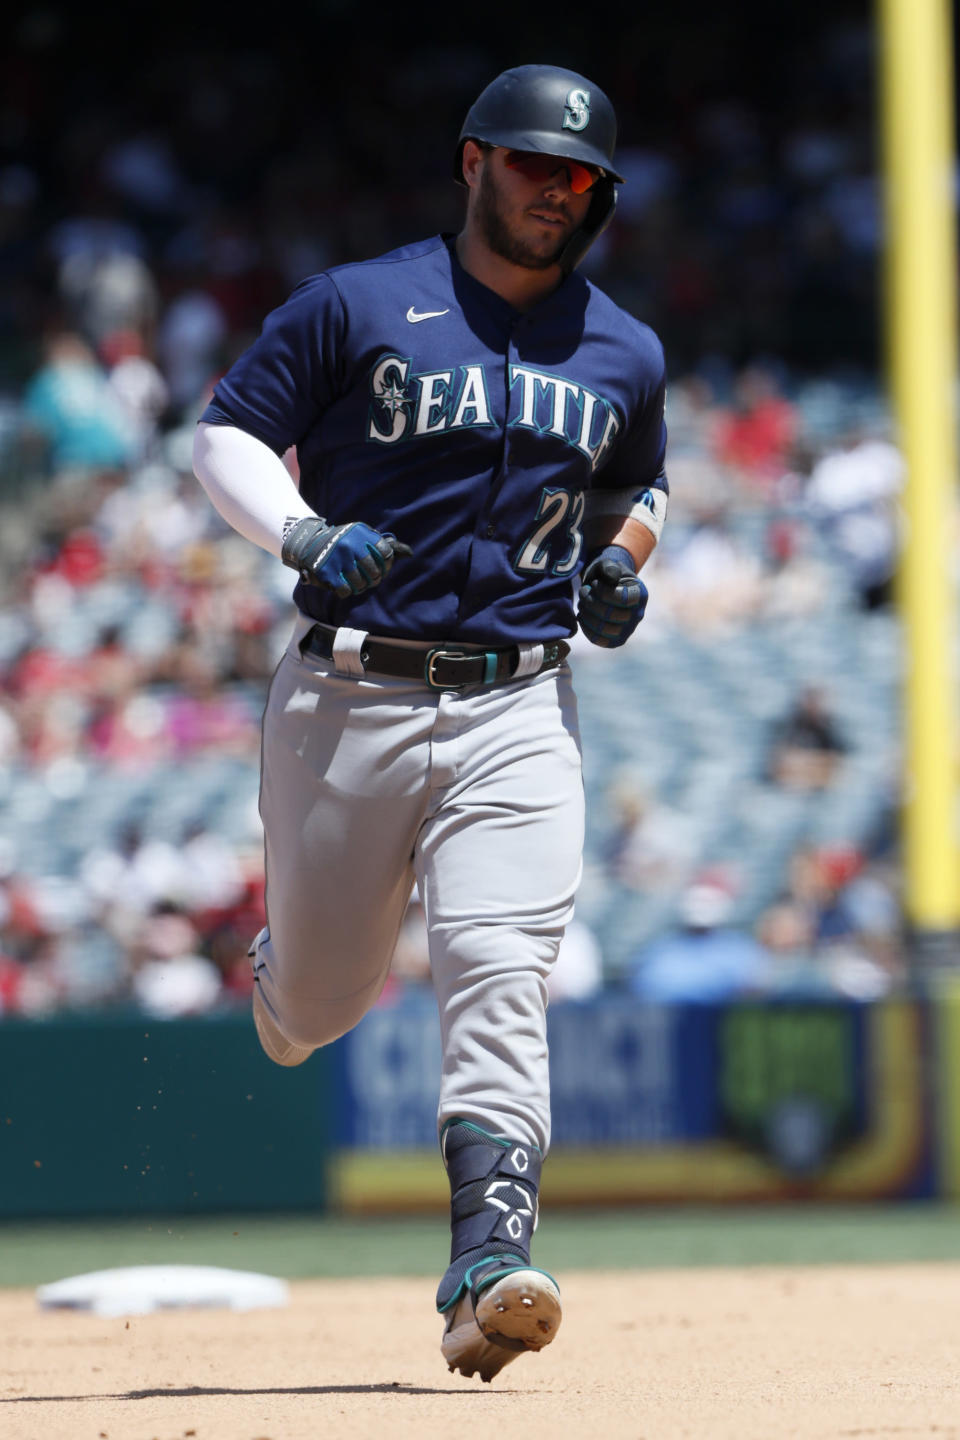 Seattle Mariners' Ty France rounds the bases after hitting a three-run home run against the Los Angeles Angels during the fifth inning of a baseball game in Anaheim, Calif., Sunday, July 18, 2021. (AP Photo/Alex Gallardo)